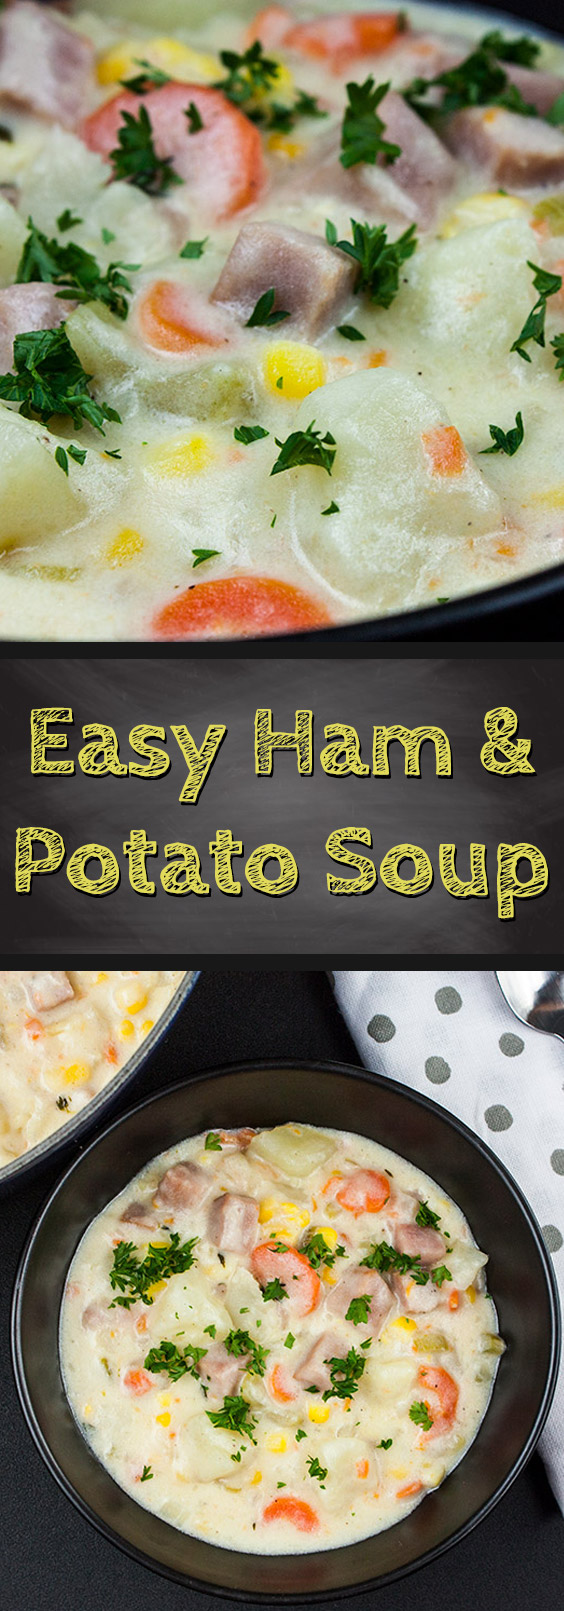 Easy Ham and Potato Soup - A creamy, warm, and hearty weeknight meal. So delicious it will be a new family favorite.#dinner #soup #comfortfood #recipe